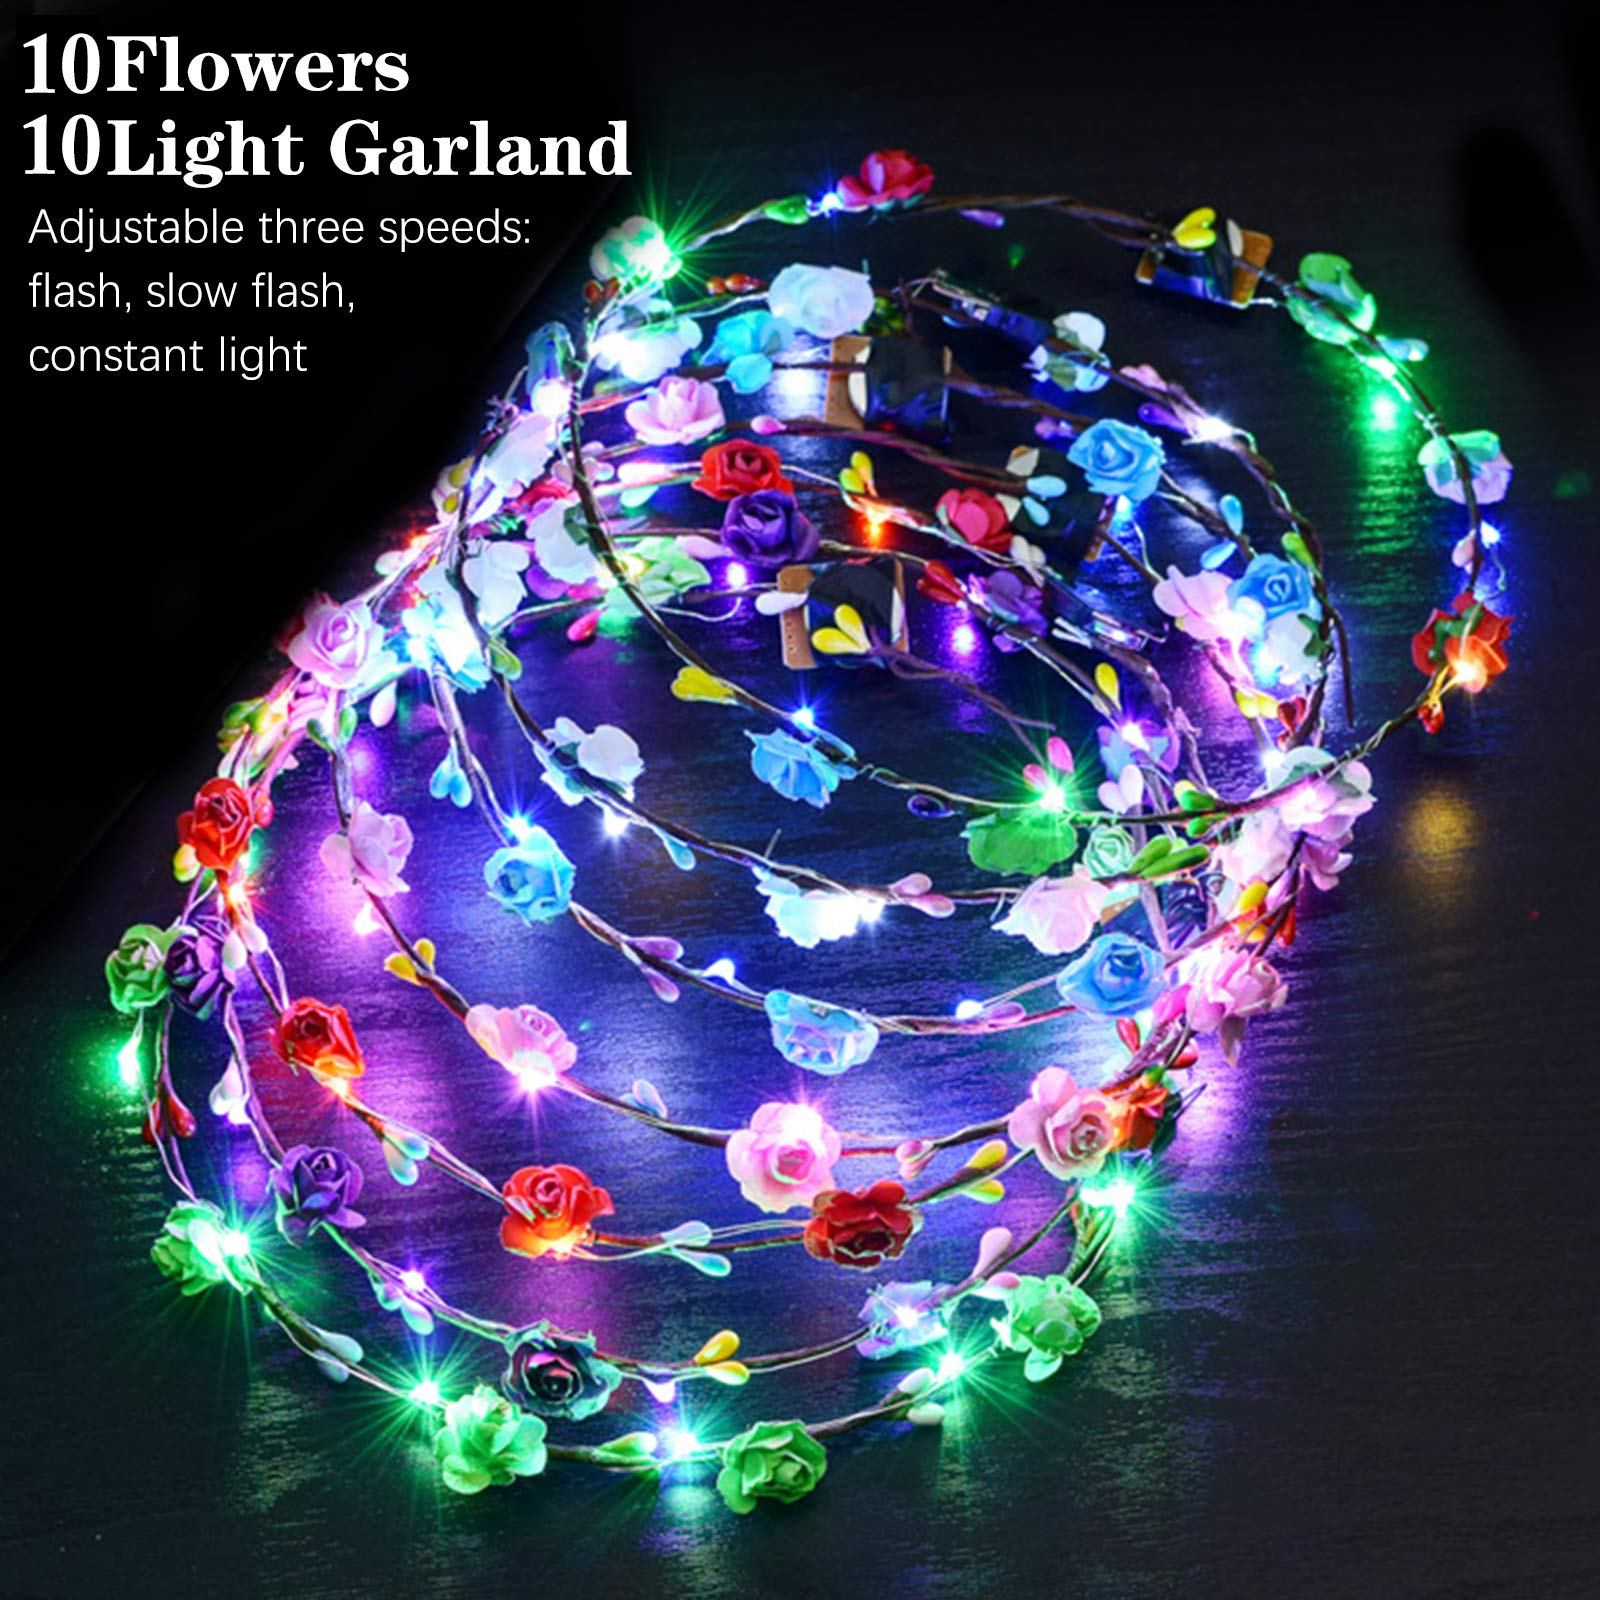 LED Flower Crown, ZOYLINK 12PCS Flower Wreath Garland Flower Headdress Luminous Headpiece Light-up Hair Hoop for Wedding Bridal Night Party Decor Festival Holiday Christmas Halloween Party